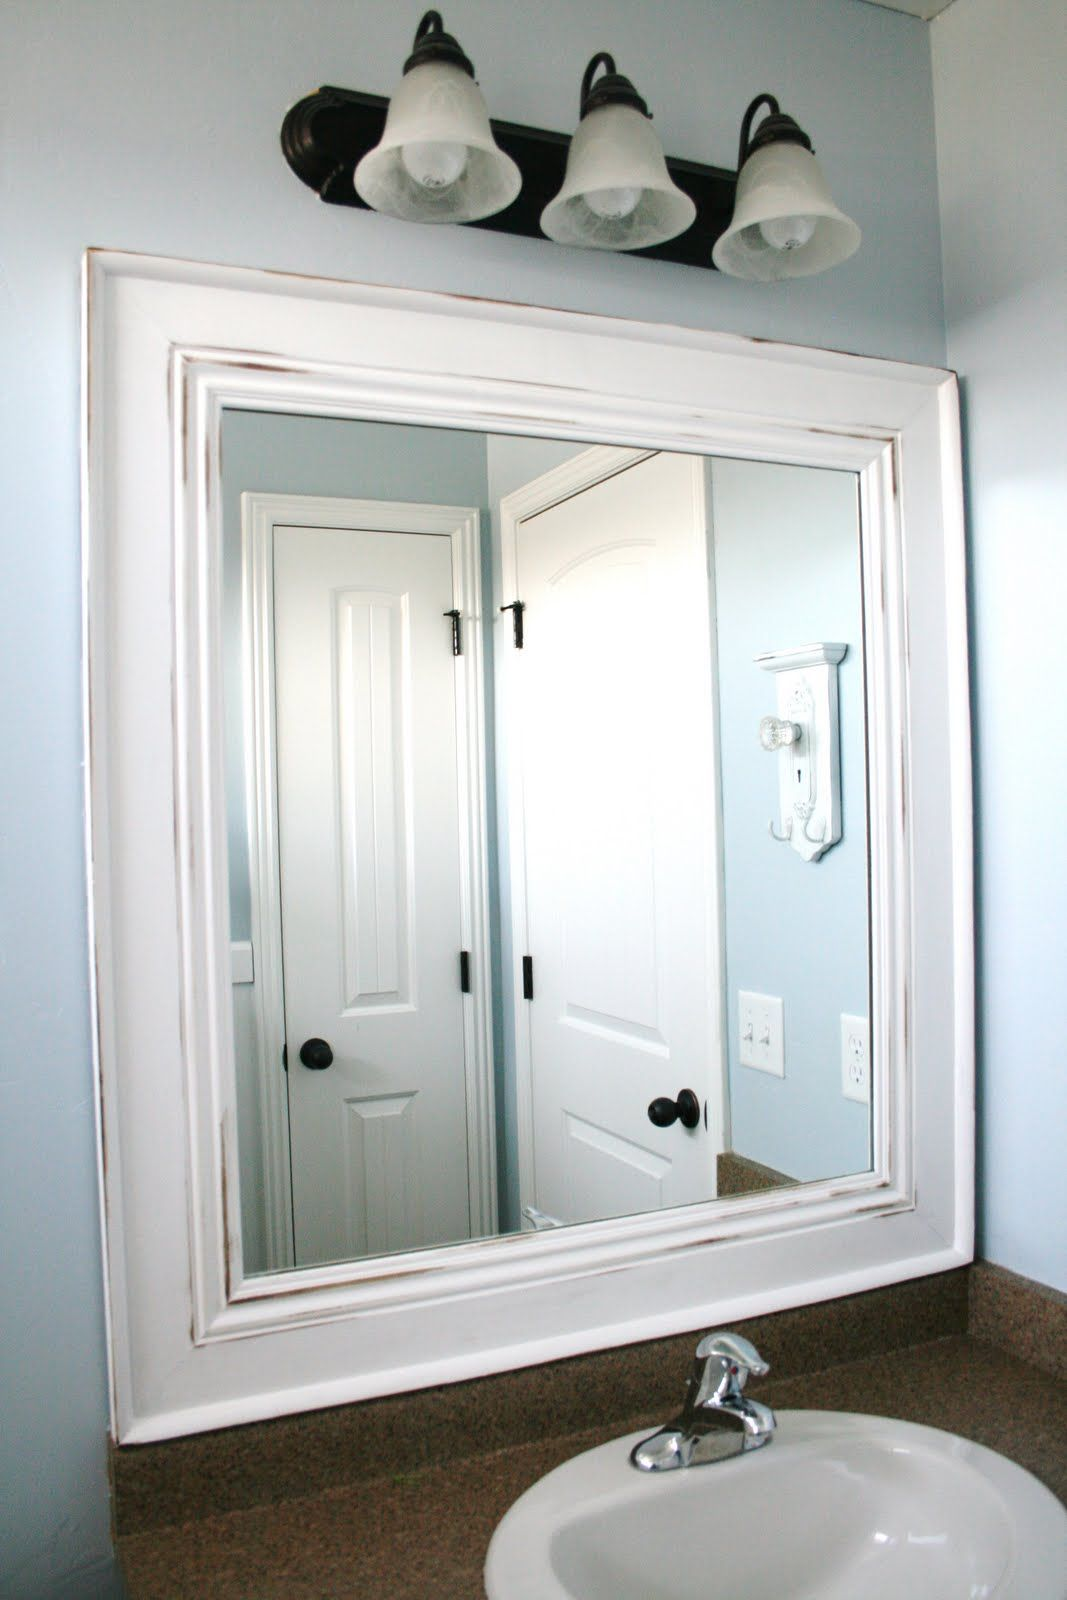 add a frame to a plain mirror in bathroom | Bathrooms | Pinterest ...